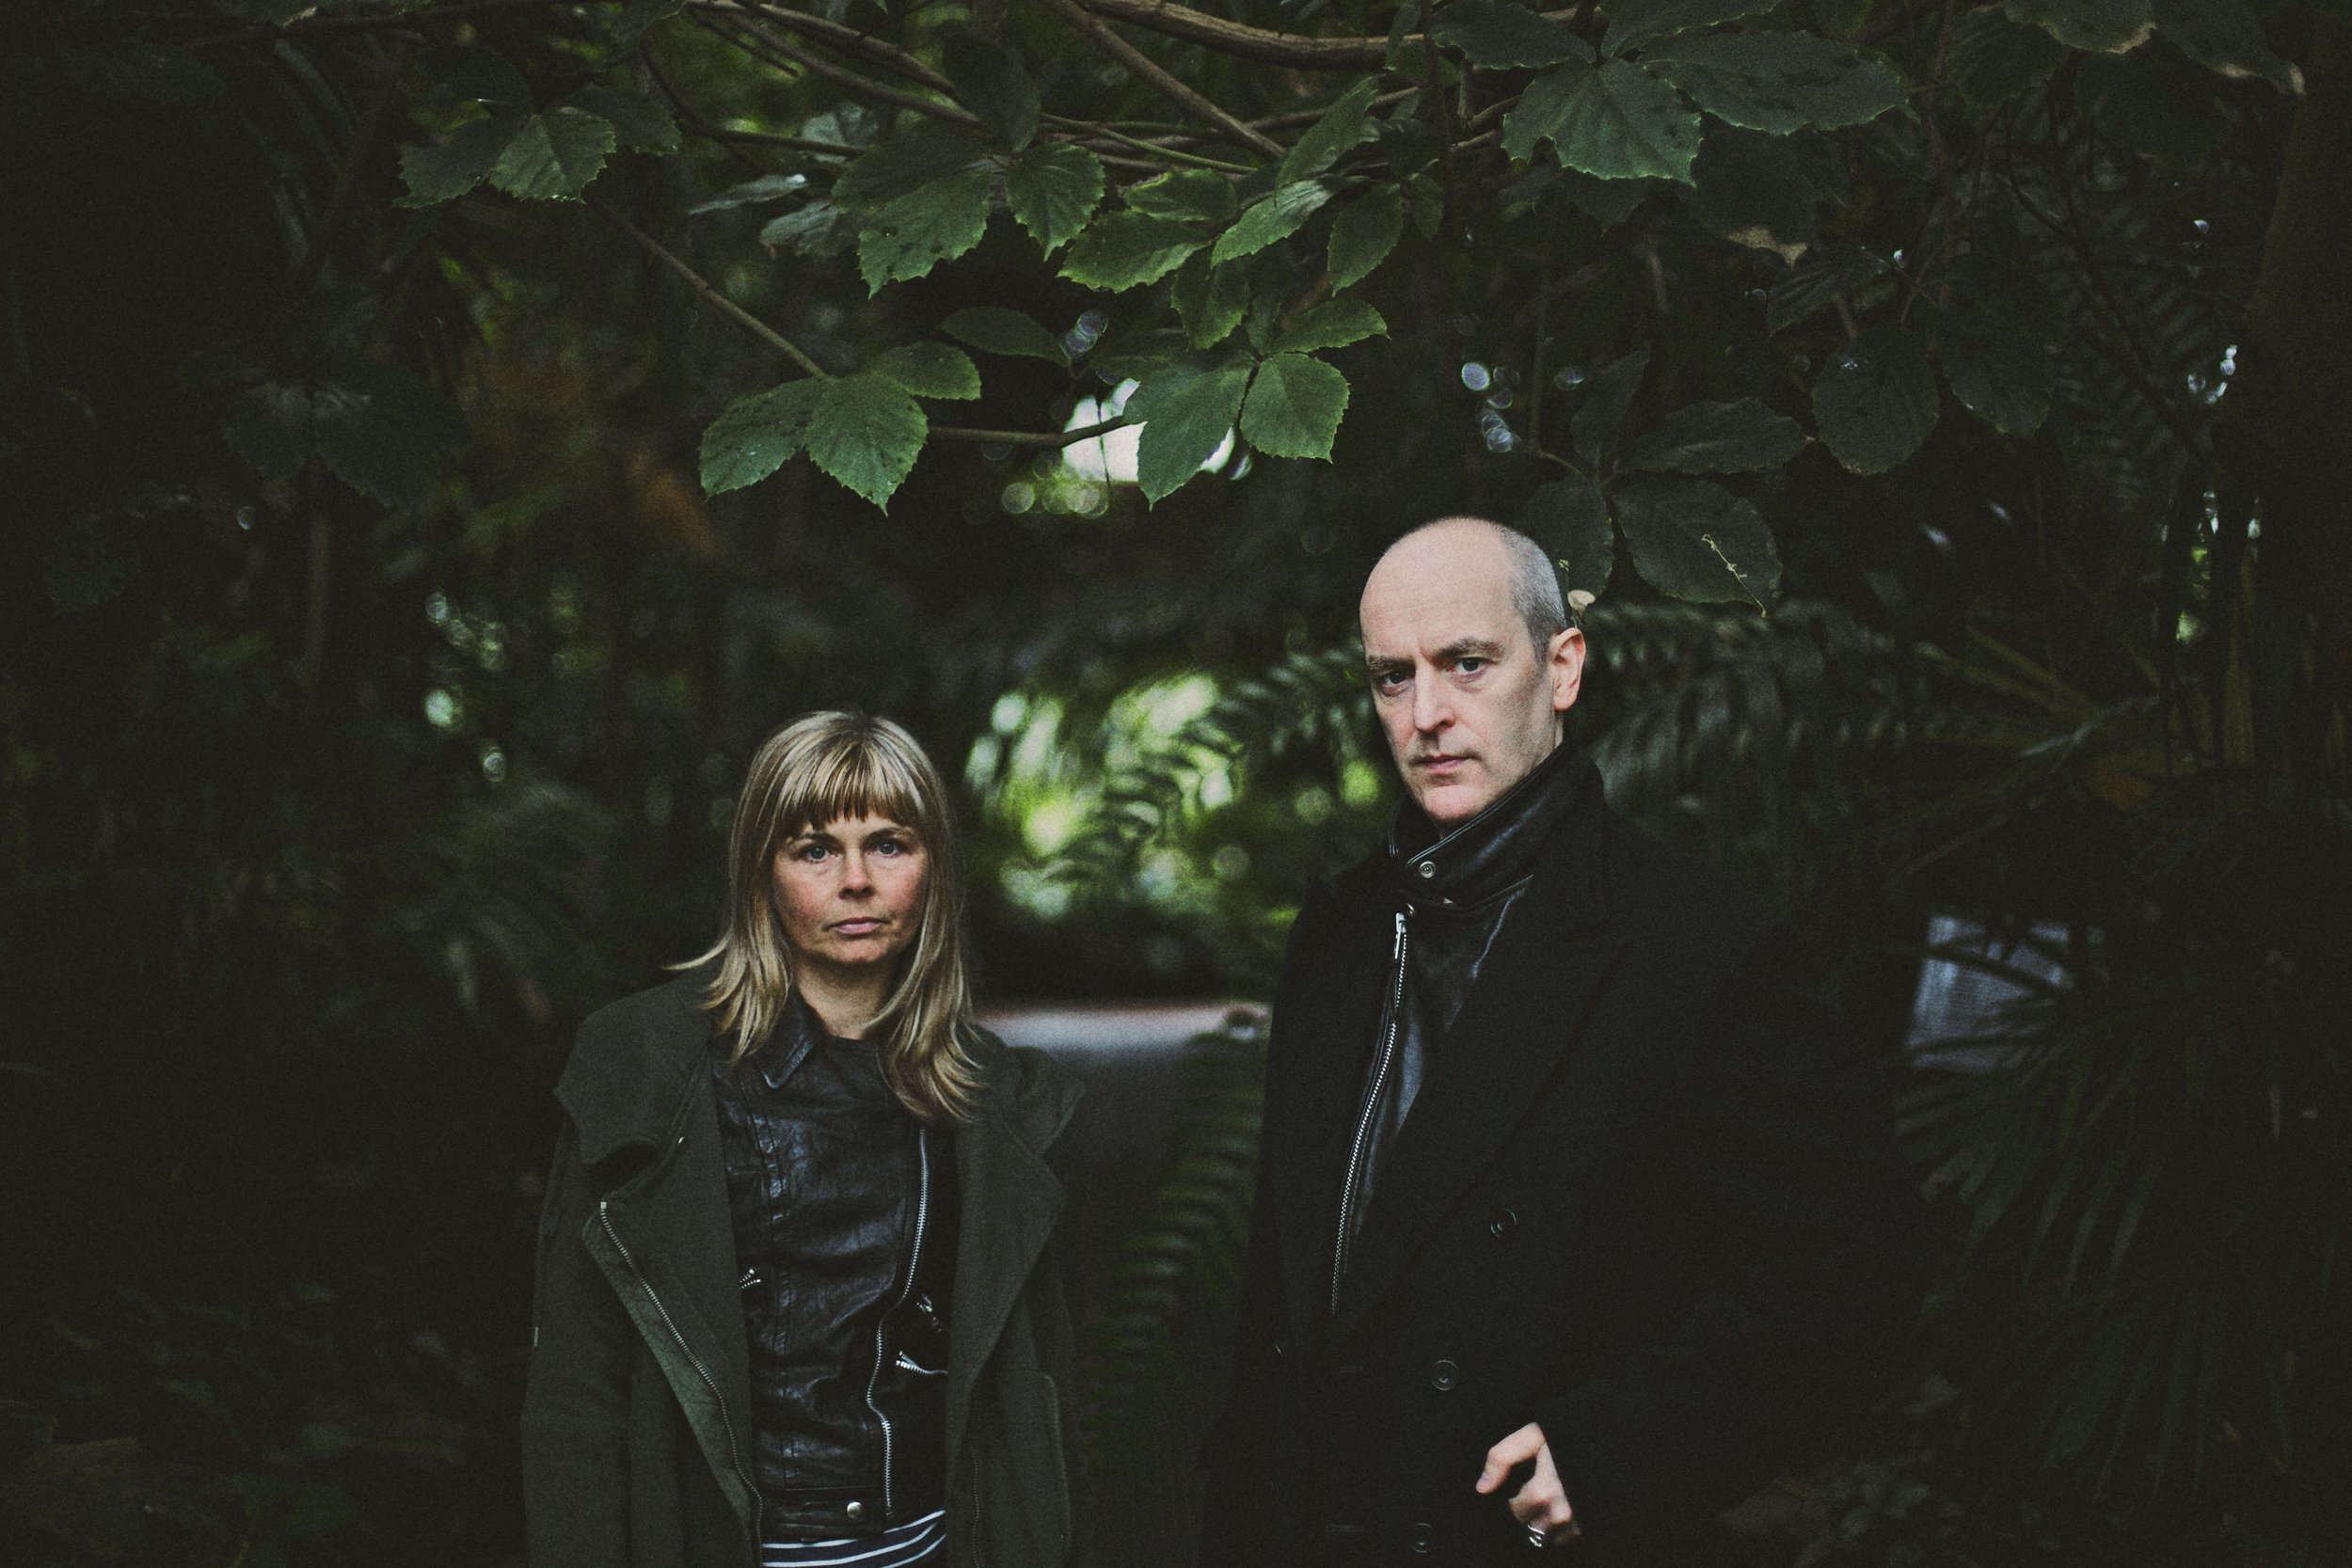 "The Vaselines formed in Glasgow in 1987 and released two singles and one album, Dum Dum, on Scotland's legendary 53rd & 3rd label. Their music was a playful, sex-obsessed, and totally catchy amalgam of bubblegum and the Velvet Underground that would help form the blueprint for modern indie-pop. The Vaselines broke up in 1989 — the same week Dum Dum was released — but soon Kurt Cobain began literally singing their praises: not only did he plug them in interviews, calling Eugene and Frances his ""favorite songwriters in the whole world,"" but Nirvana covered three Vaselines songs, igniting world-wide interest in this obscure, defunct and absolutely brilliant band. In 1992, Sub Pop released the compilation The Way of the Vaselines, introducing the band to a new generation of fans. Eugene and Frances were still making music: Eugene formed Captain America, aka Eugenius, and signed with Atlantic Records; Frances led the bands Painkillers and Suckle.  The two stayed in touch and even played together now and then, reuniting in 2008 and touring the U.S. — including a legendary appearance at Sub Pop's 20th anniversary festival — as well as Brazil, Japan and the UK to adoring audiences beguiled by the band's irresistible tunes and hilariously salty stage banter. Soon, there was the acclaimed Sex with an X (2010) — unmistakably the Vaselines but with a more sophisticated sound and a newfound poignancy and wisdom.  Above all, V for Vaselines is a celebration of the continued chemistry of Eugene and Frances. ""We just work together well,"" Eugene says. ""I don't know what it is but when we get together, it creates a sound we couldn't do separately.""  They were struggling for an album title until one day Eugene came across a classic photo of Winston Churchill flashing the V-for-victory sign. ""And I just thought, 'V for Vaselines!'"" he says. Frances loved it too, so that was it. And the album is indeed a sort of victory. ""We were wondering if we could do something new and different for us, so we decided to see if we could,"" says Eugene. ""We're really happy that we've made a record that we can be proud of."""